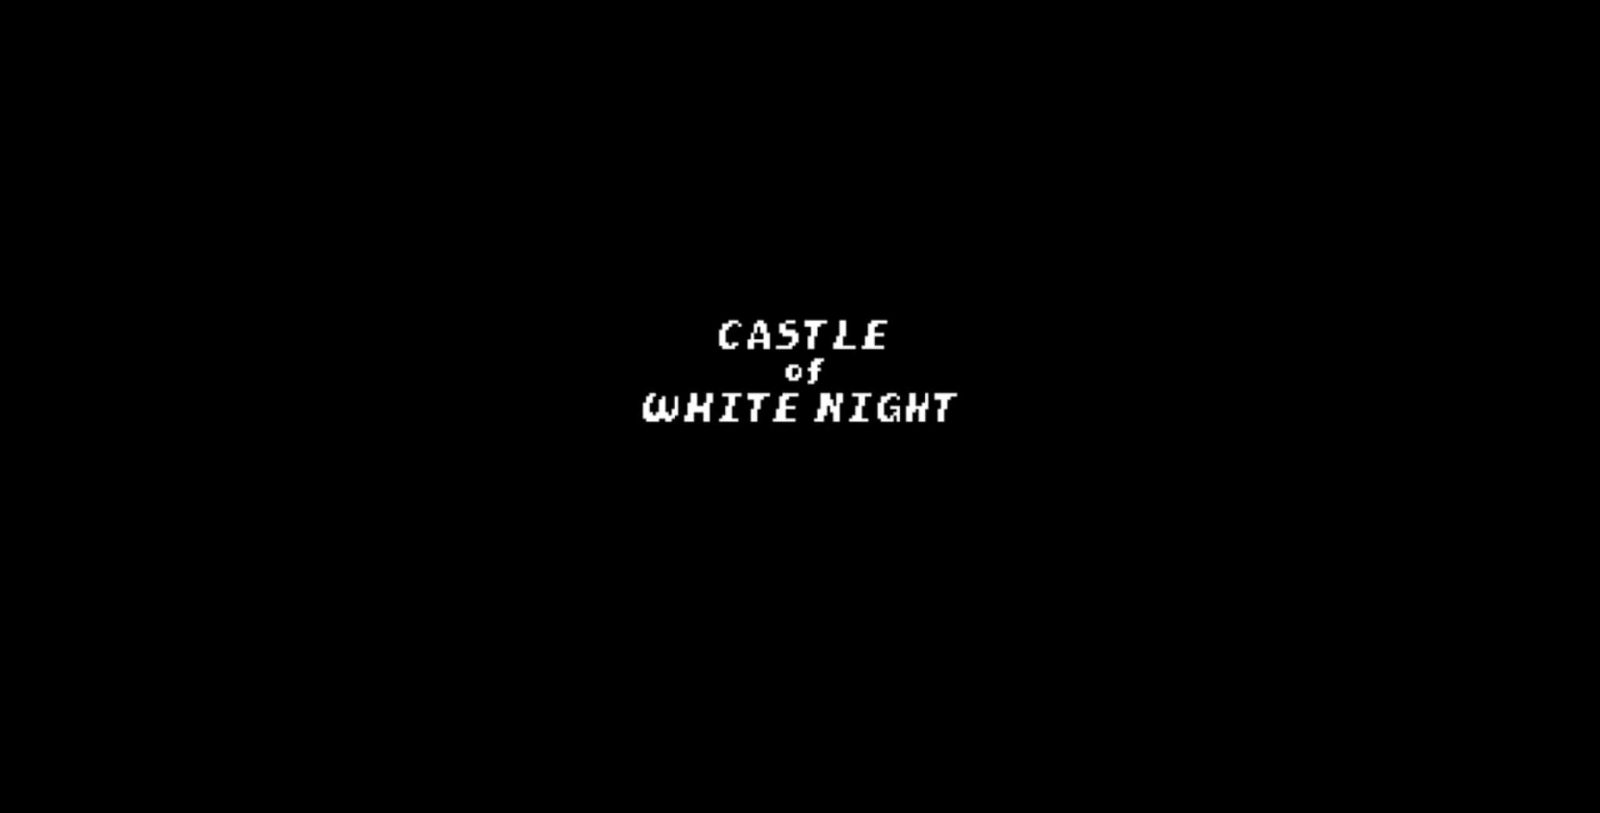 Castle of White Night